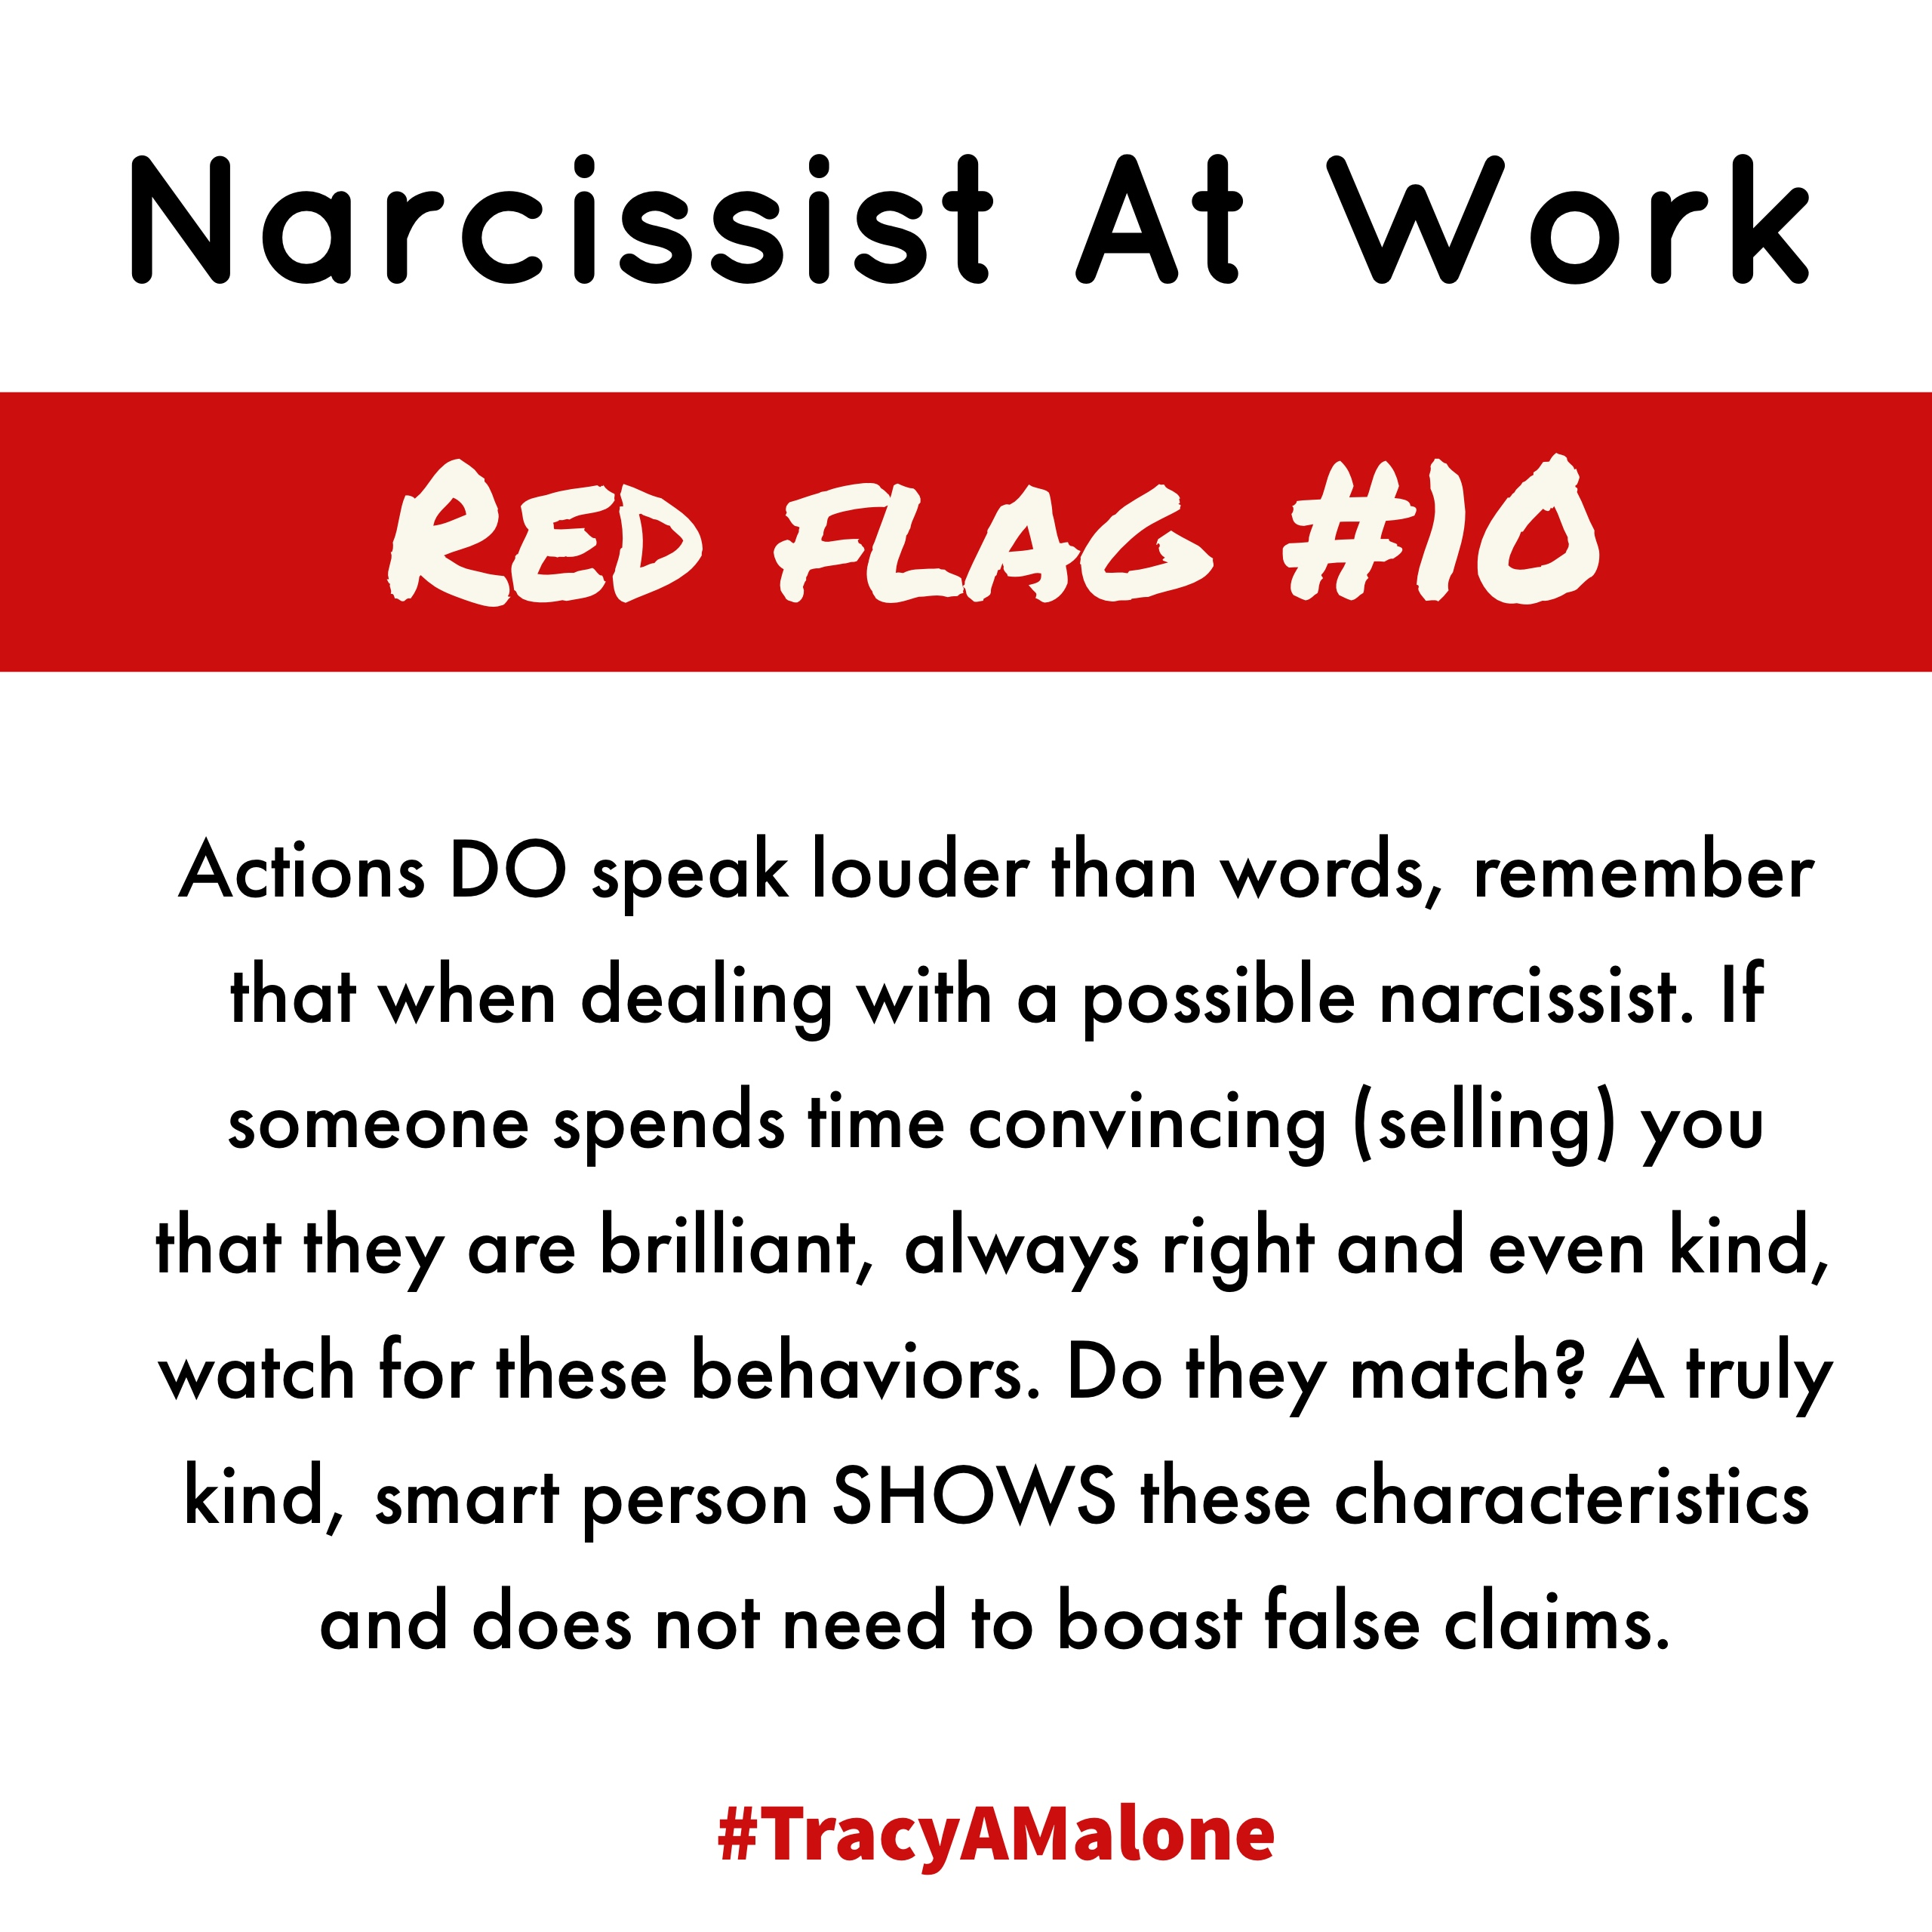 IMG_1105 - Narcissist Abuse Support